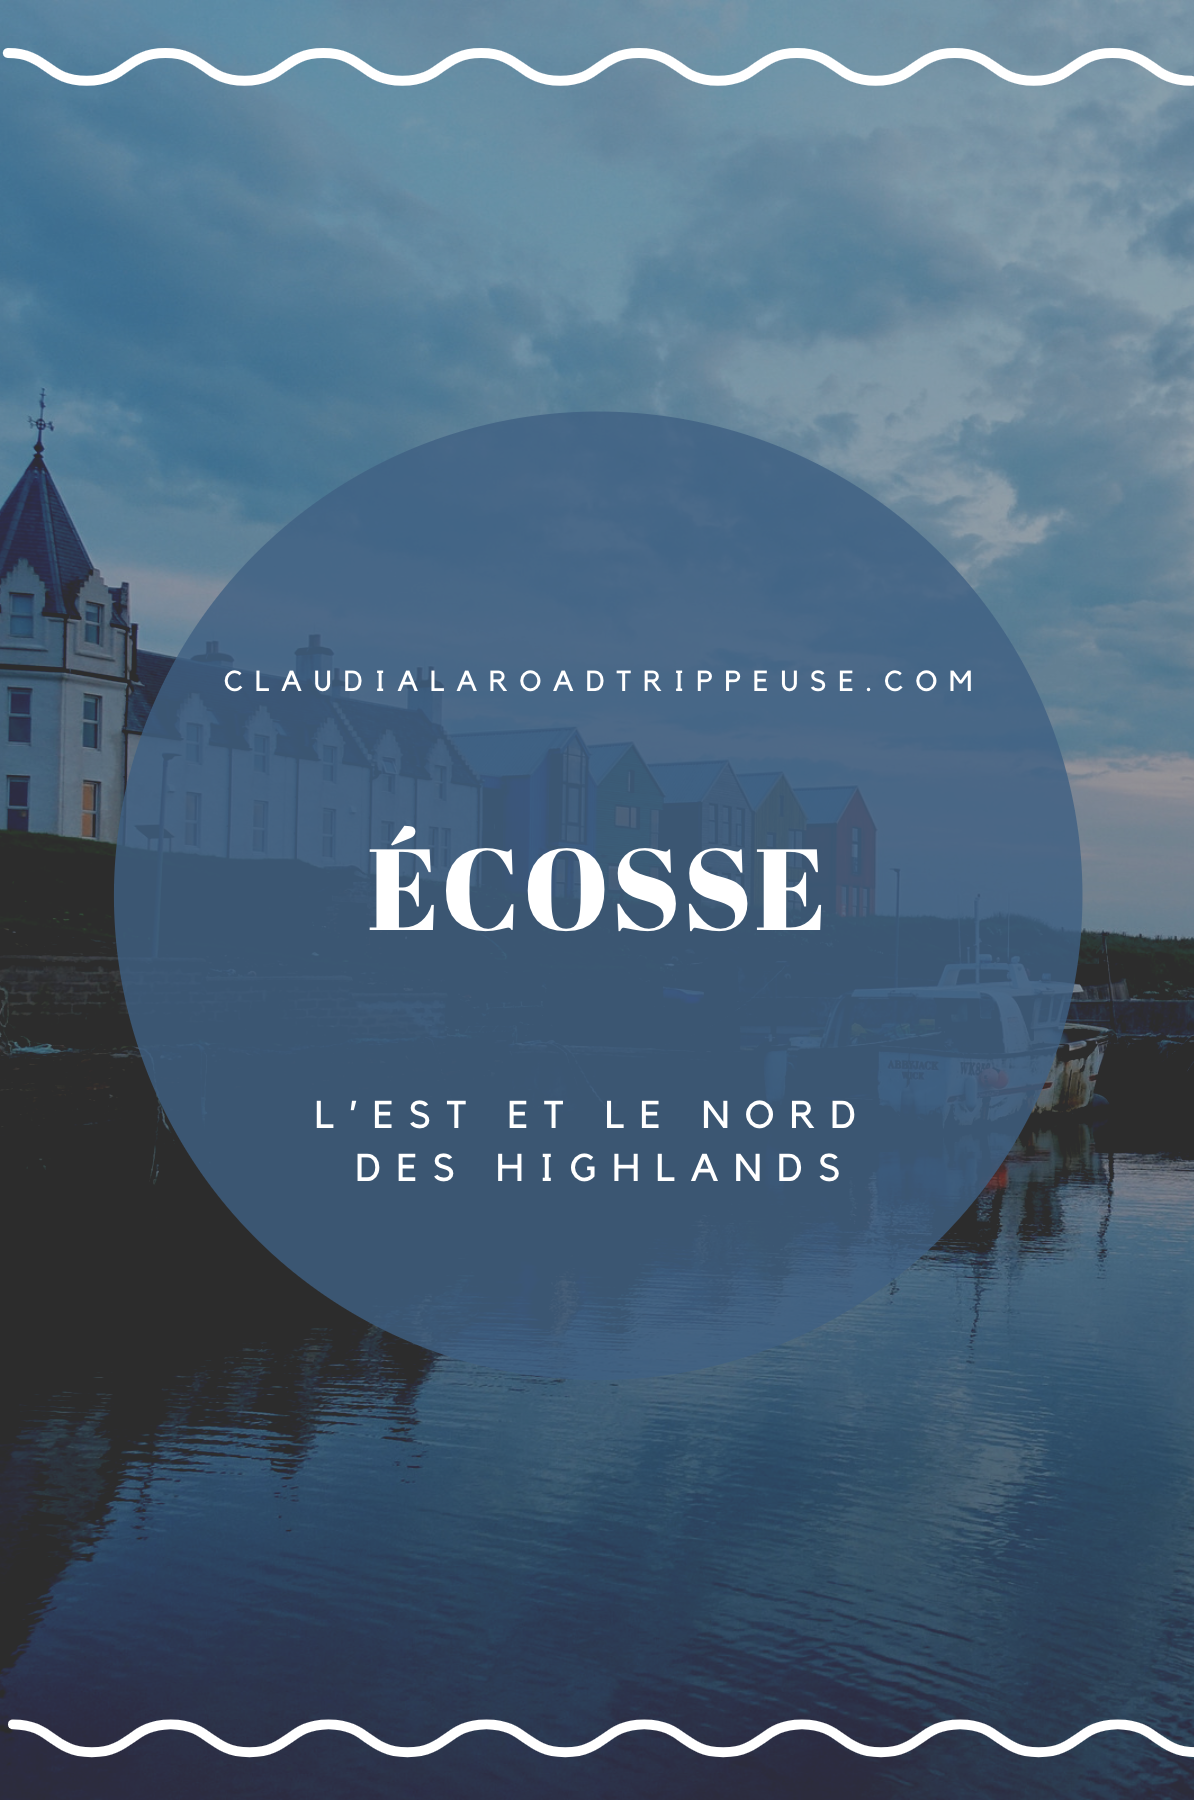 Écosse Highlands partie 2 canva pour Pinterest